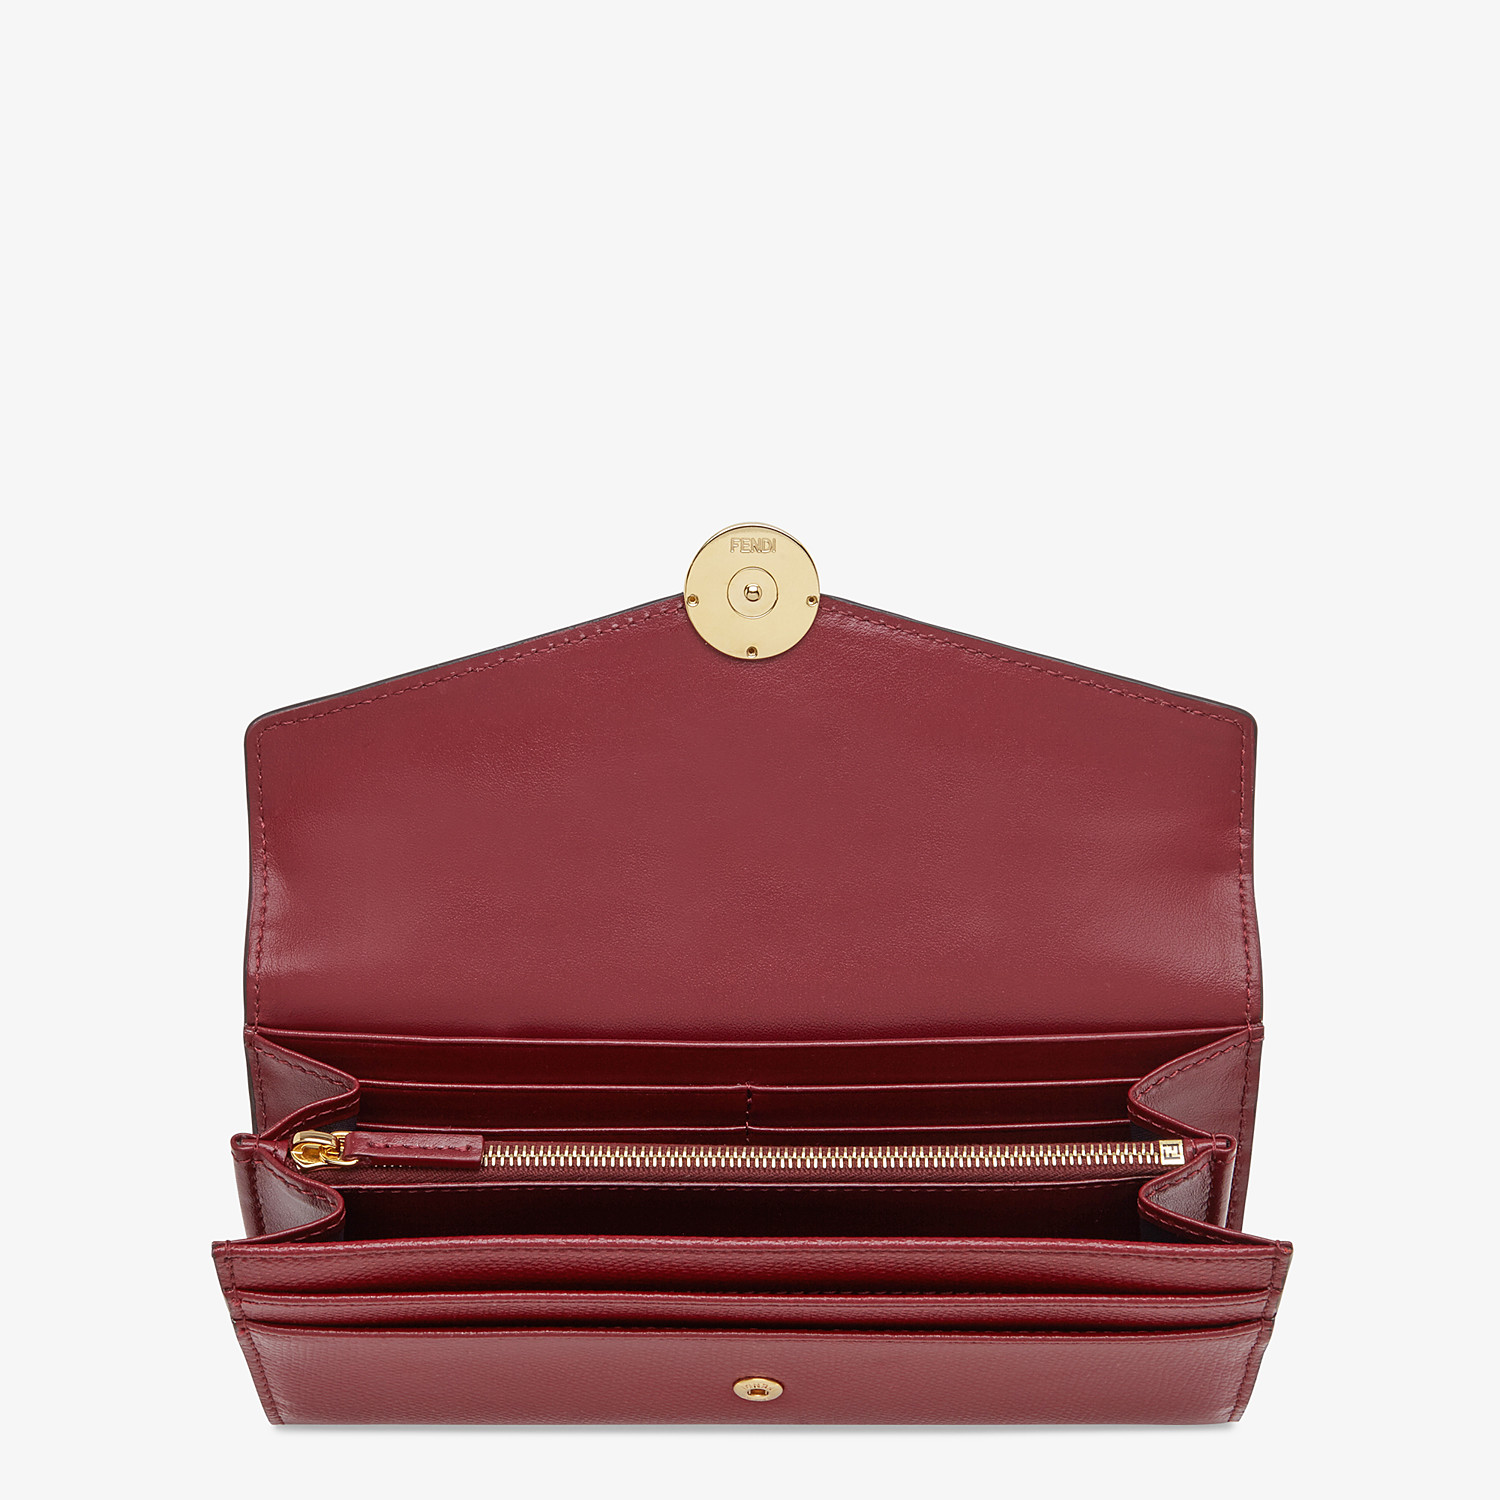 FENDI CONTINENTAL - Burgundy leather wallet - view 3 detail